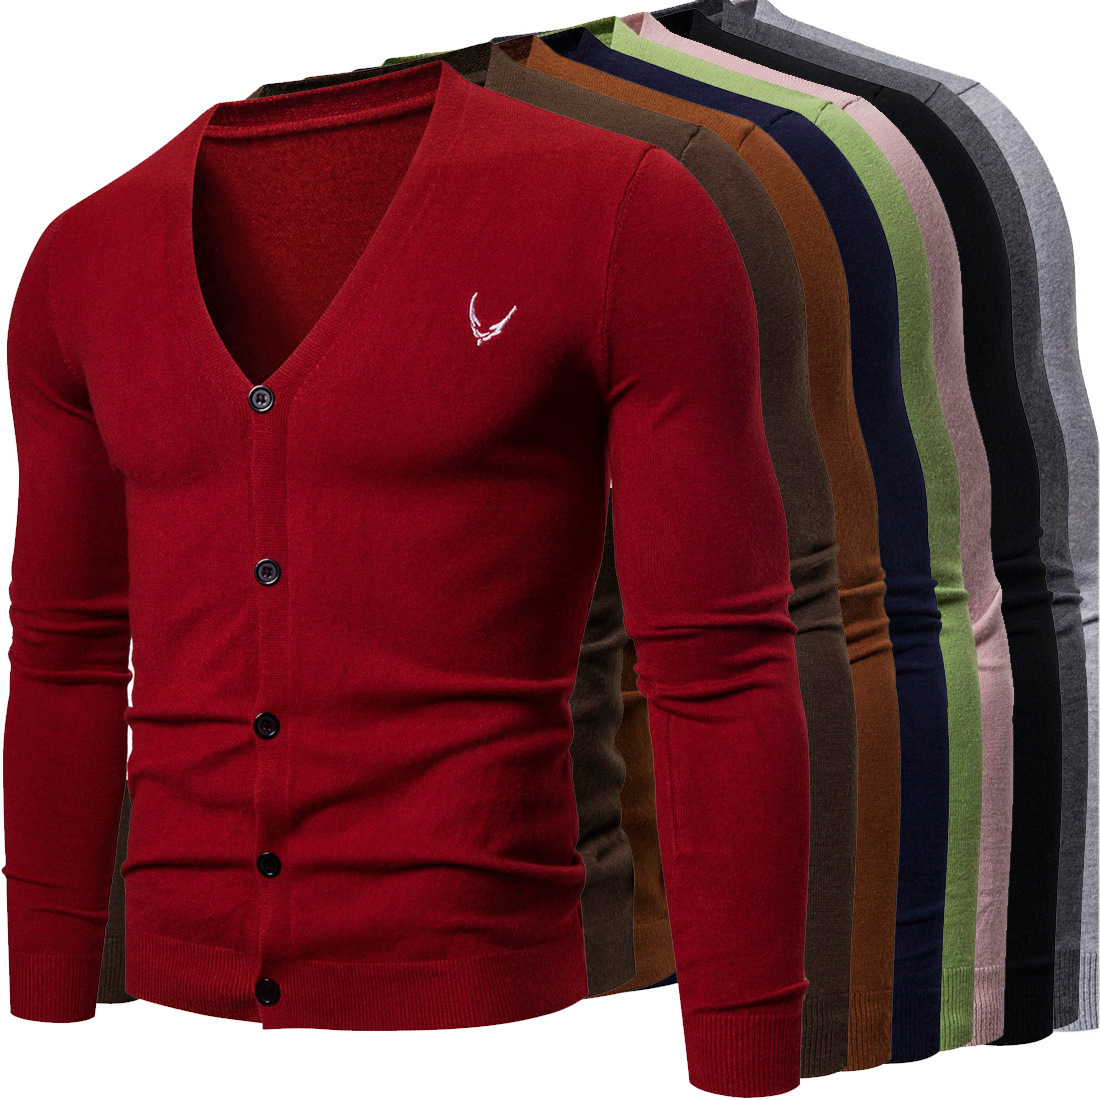 2020 Spring Knitted Jacket Men's Slim Cotton V-neck Single-breasted Sweater Cardigan Casual Korean Men's Sweater Coat